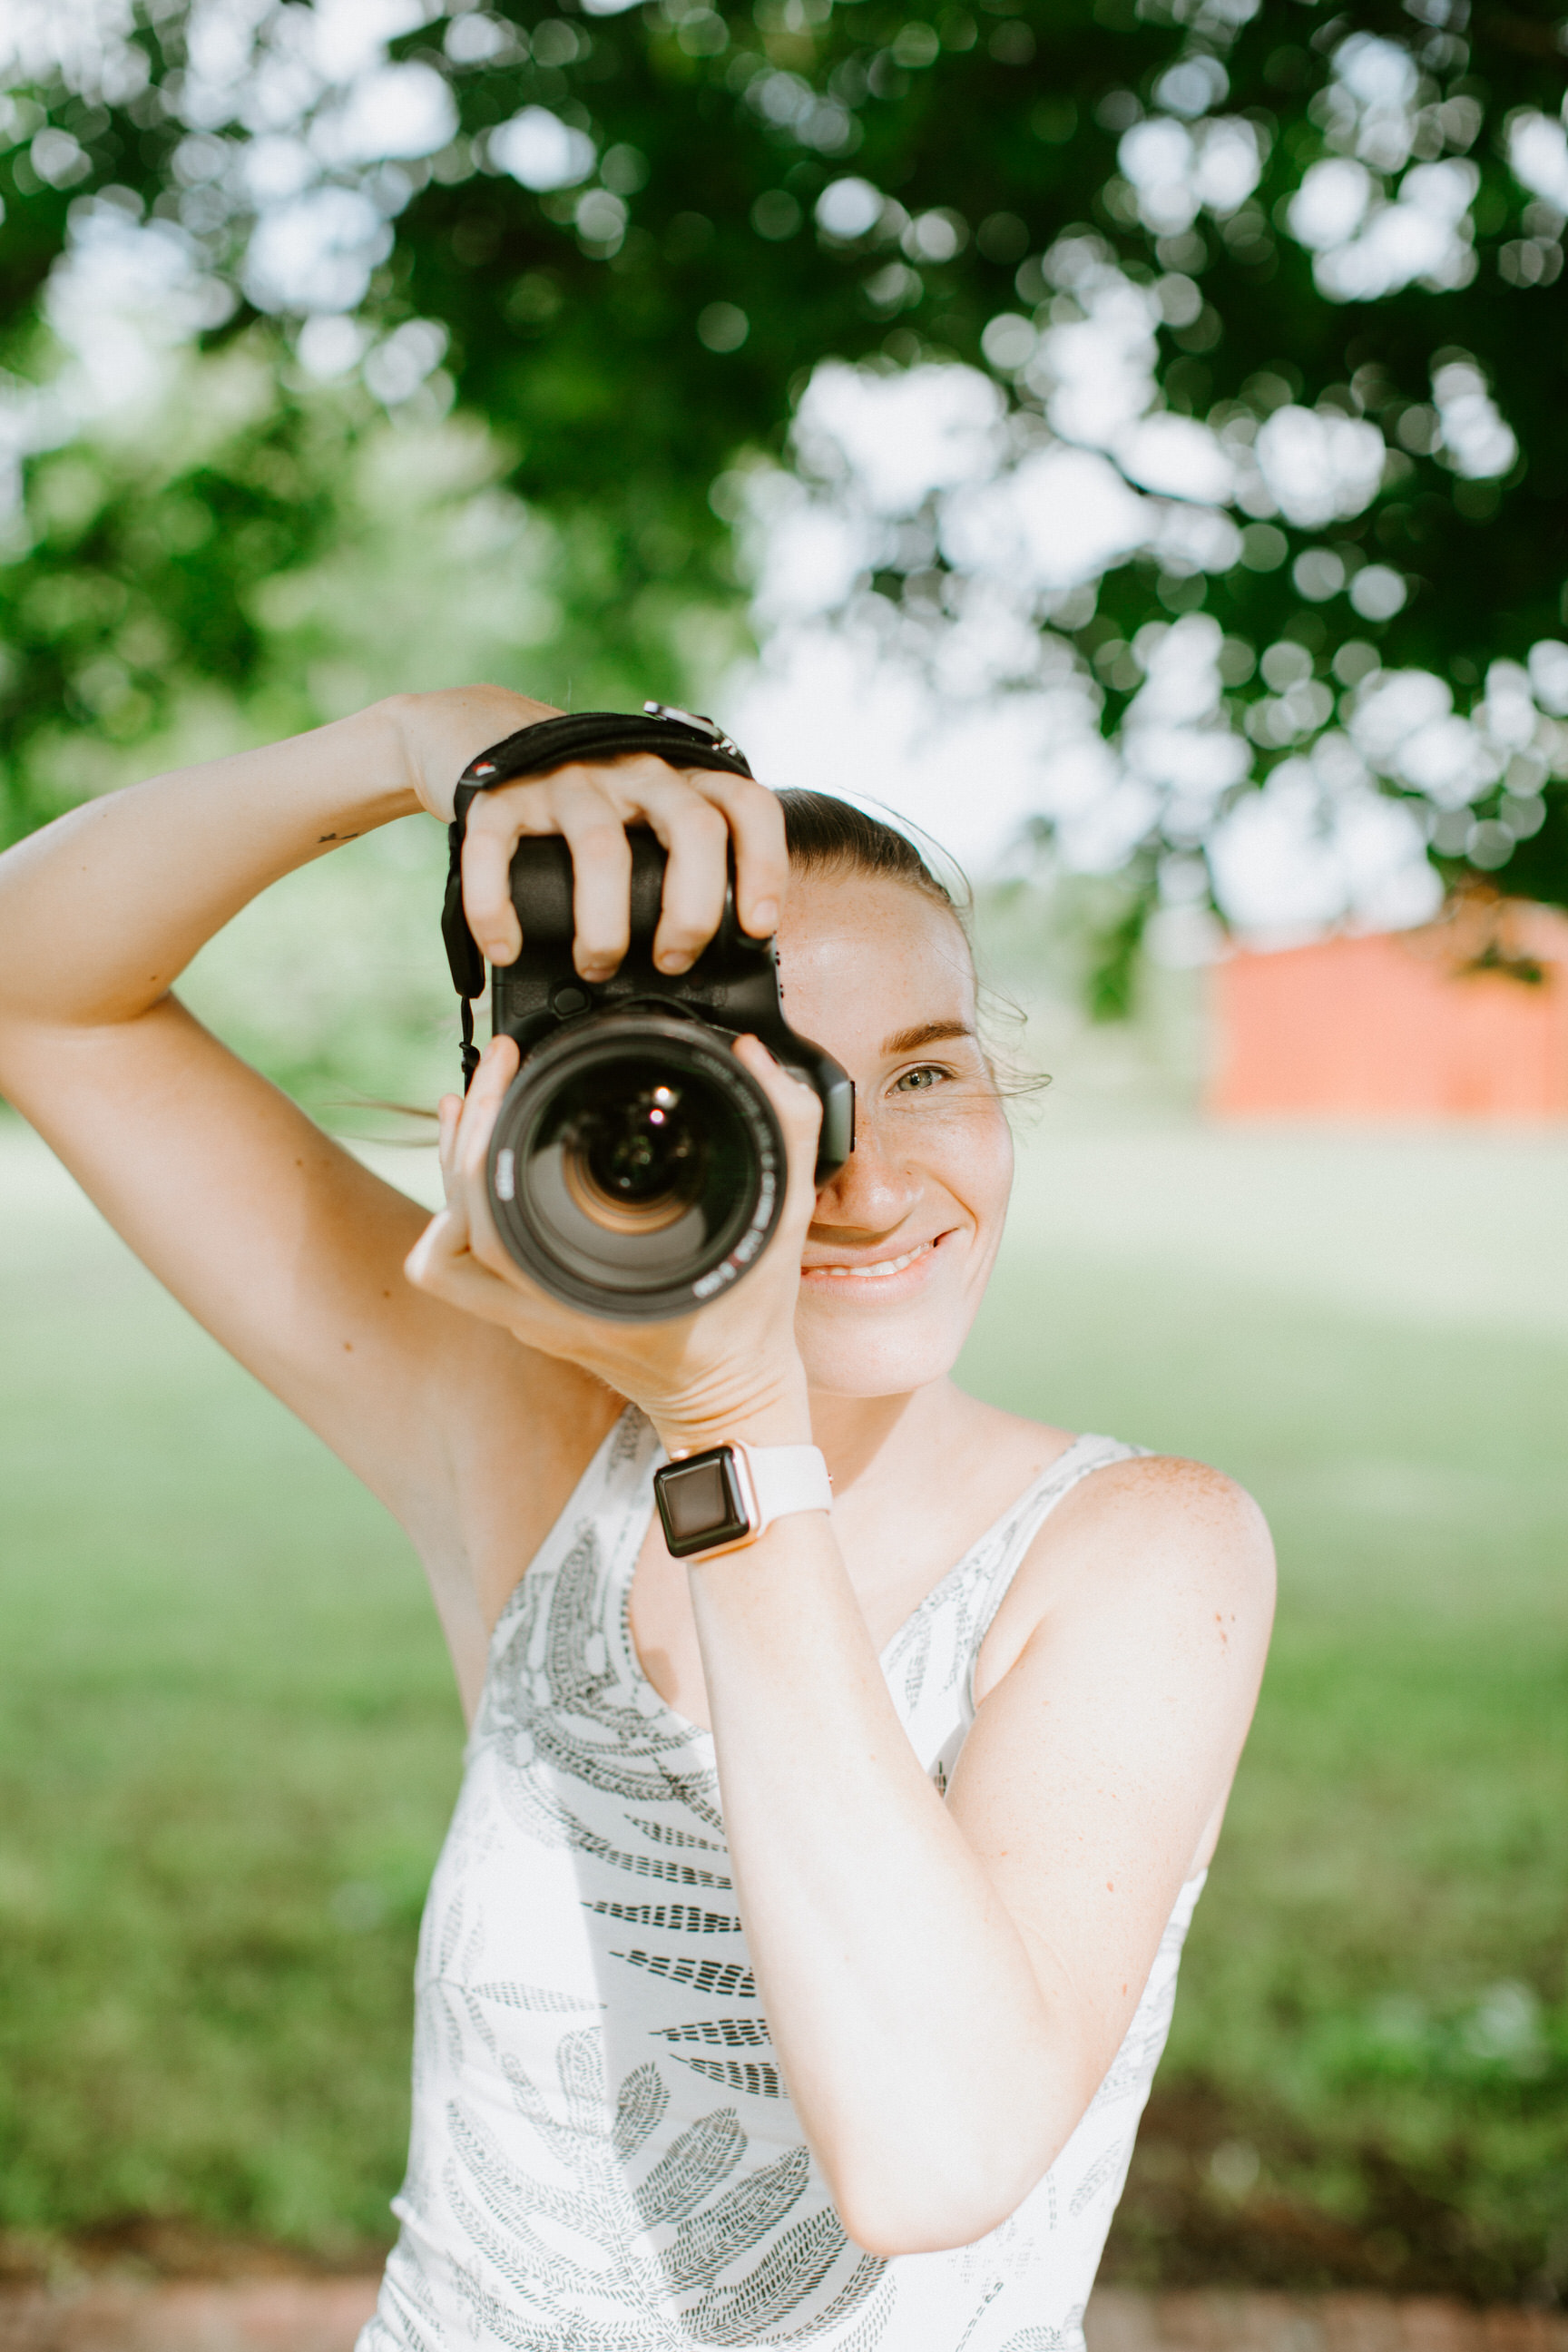 Taylor Heery Owner & Photographer